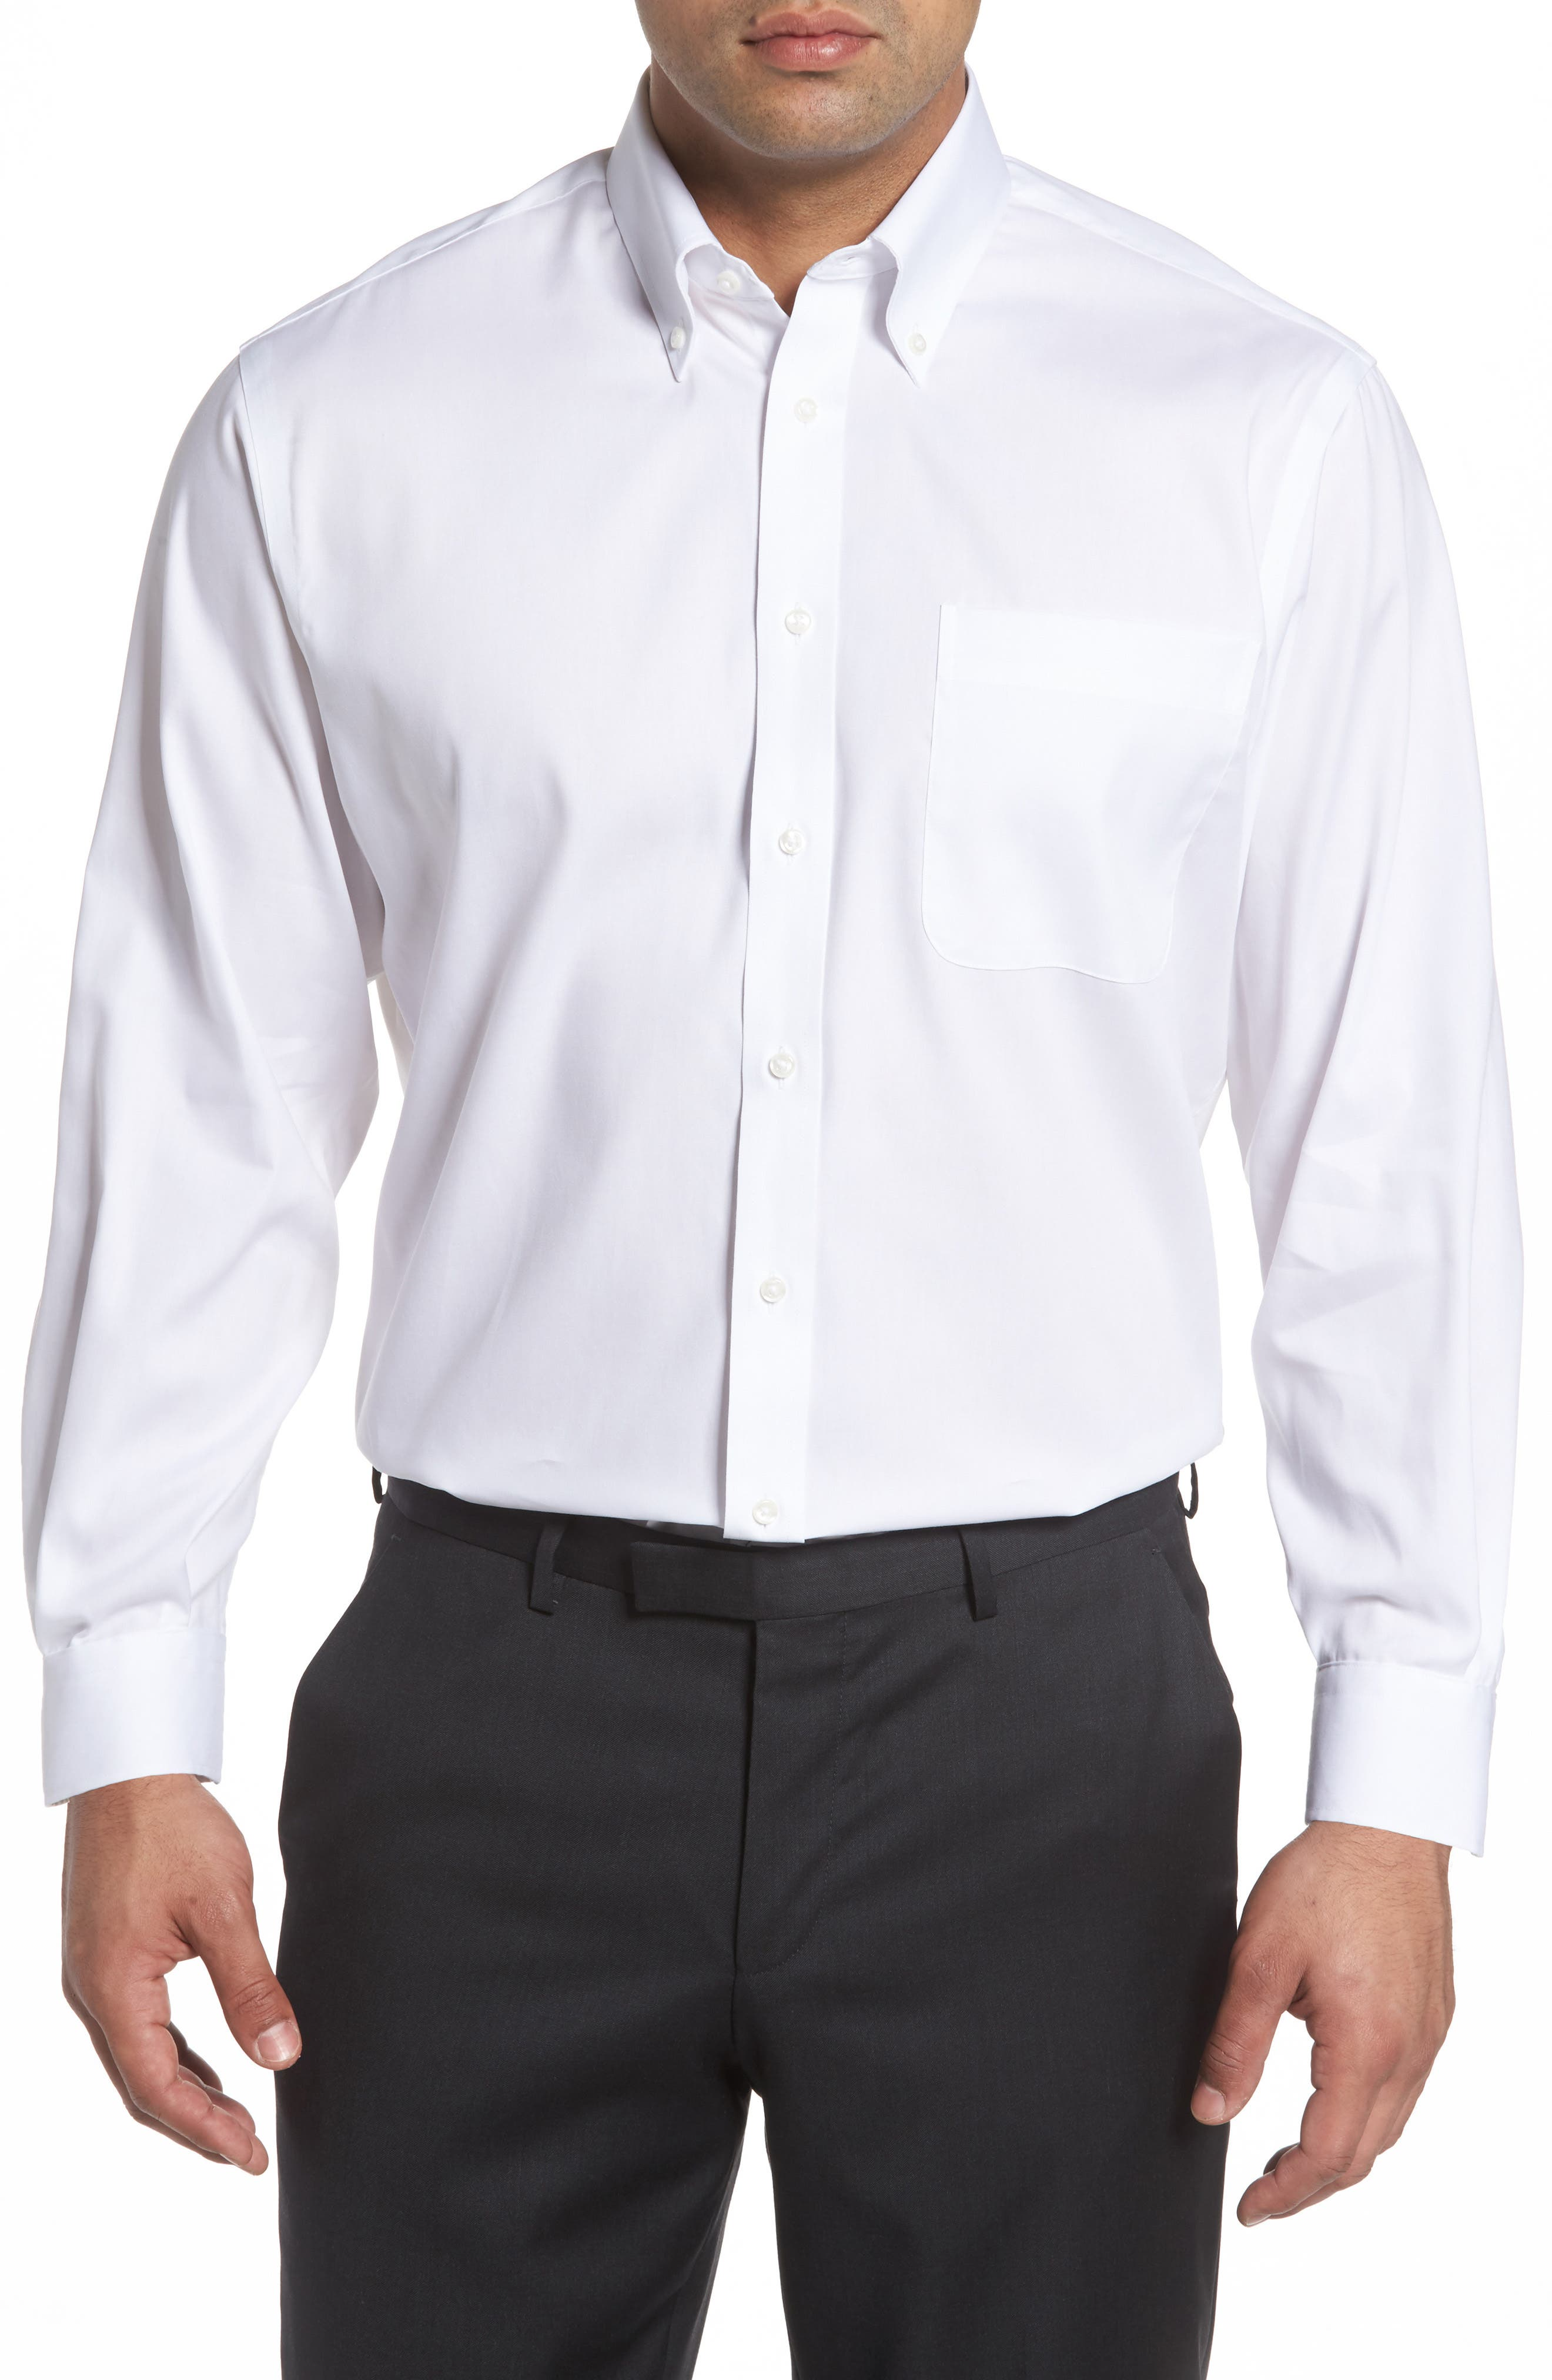 Alternate Image 1 Selected - Nordstrom Men's Shop Classic Fit Non-Iron Solid Dress Shirt